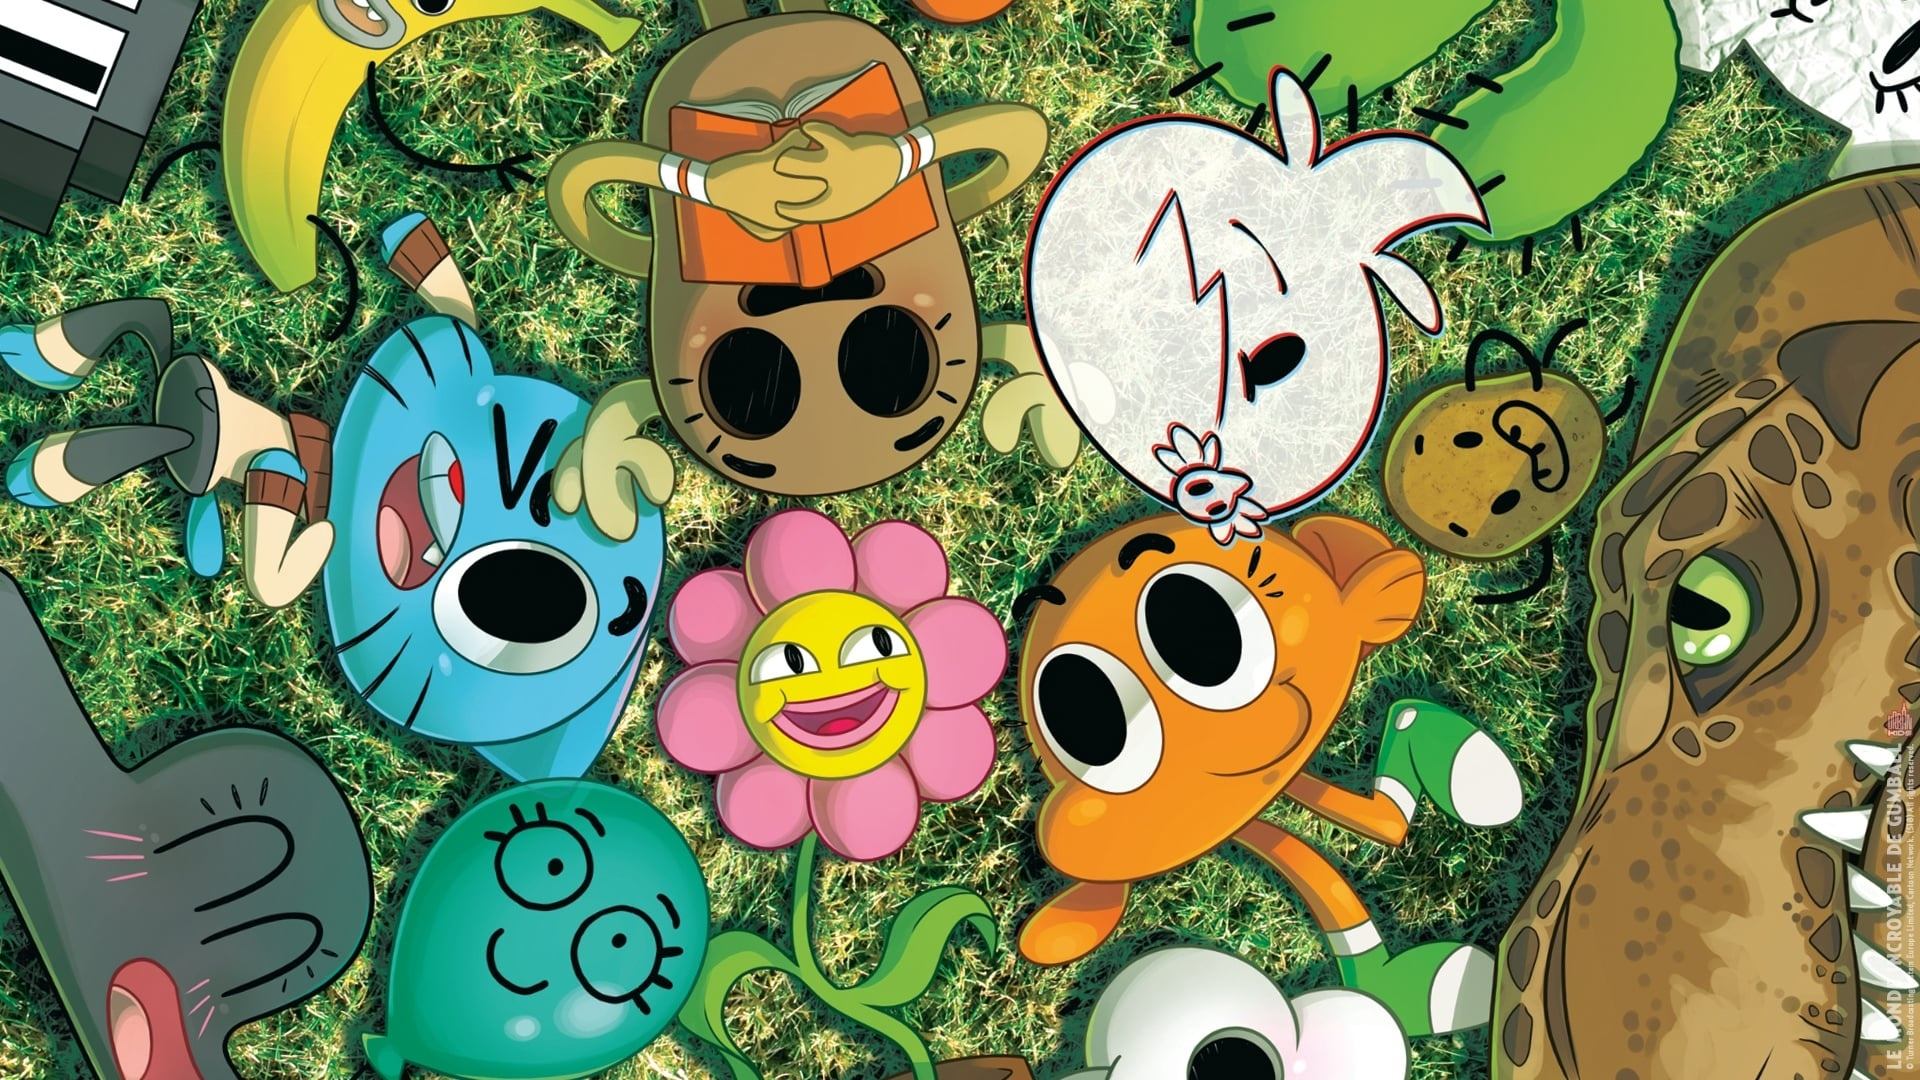 World Of Gumball cool background